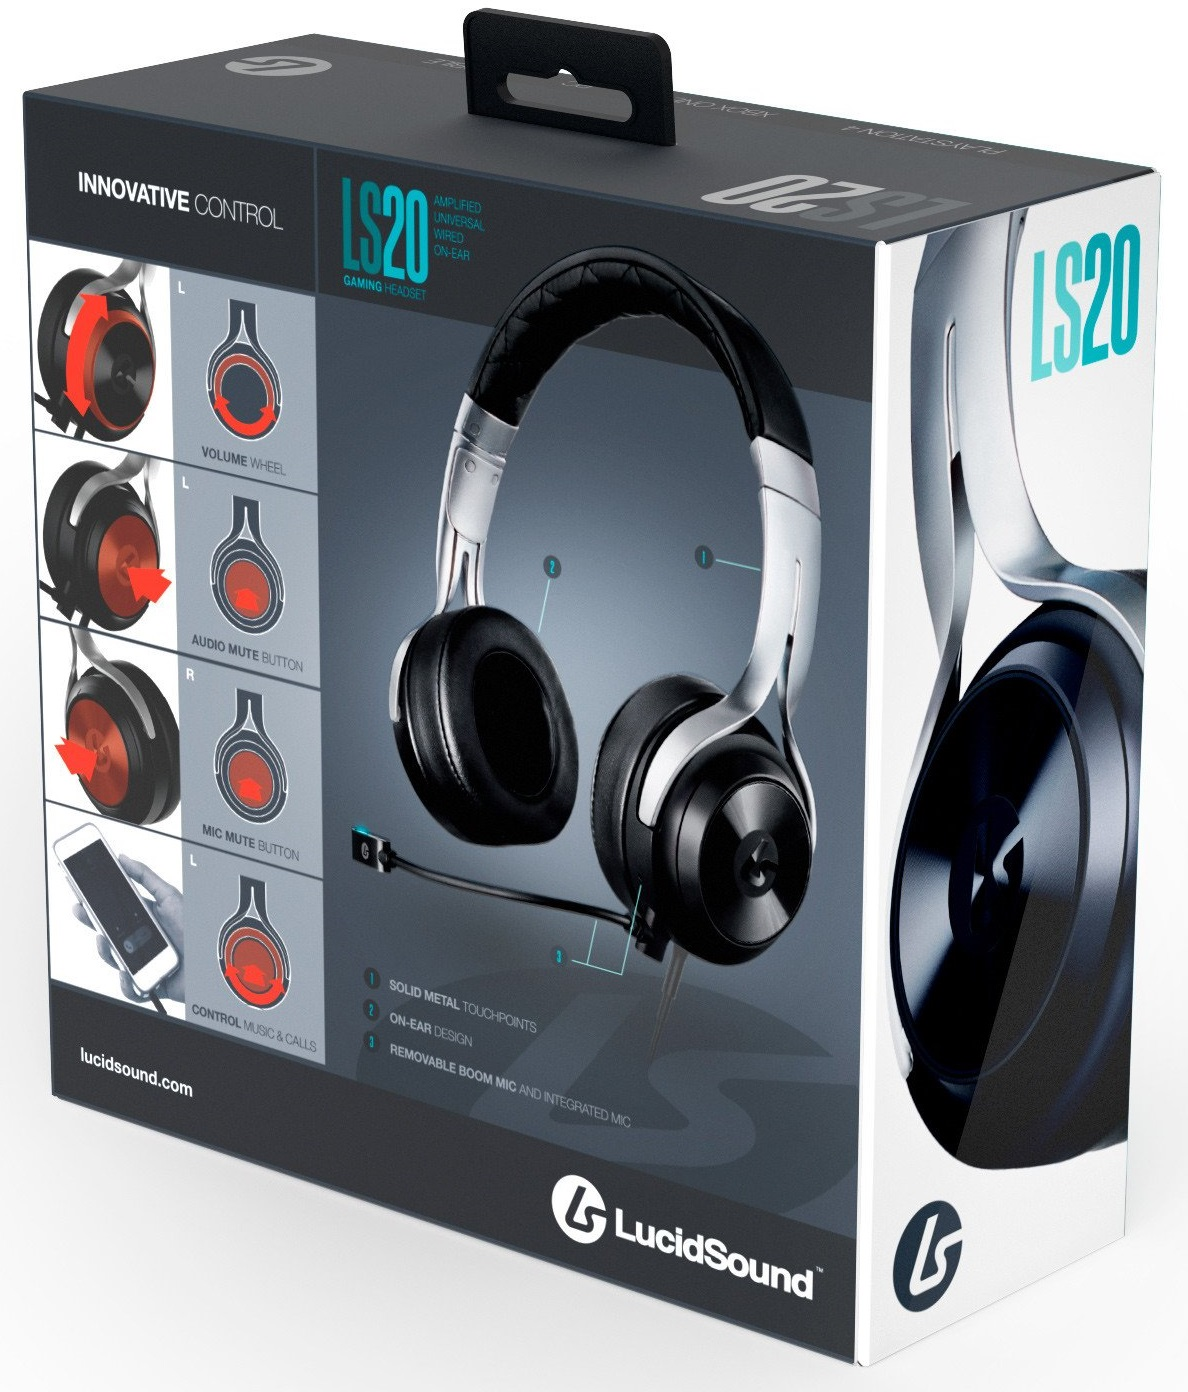 Details about Lucid Sound LS20 Black Wired Gaming Headset w/ Mic for PS4  Xbox One PC & Mobile